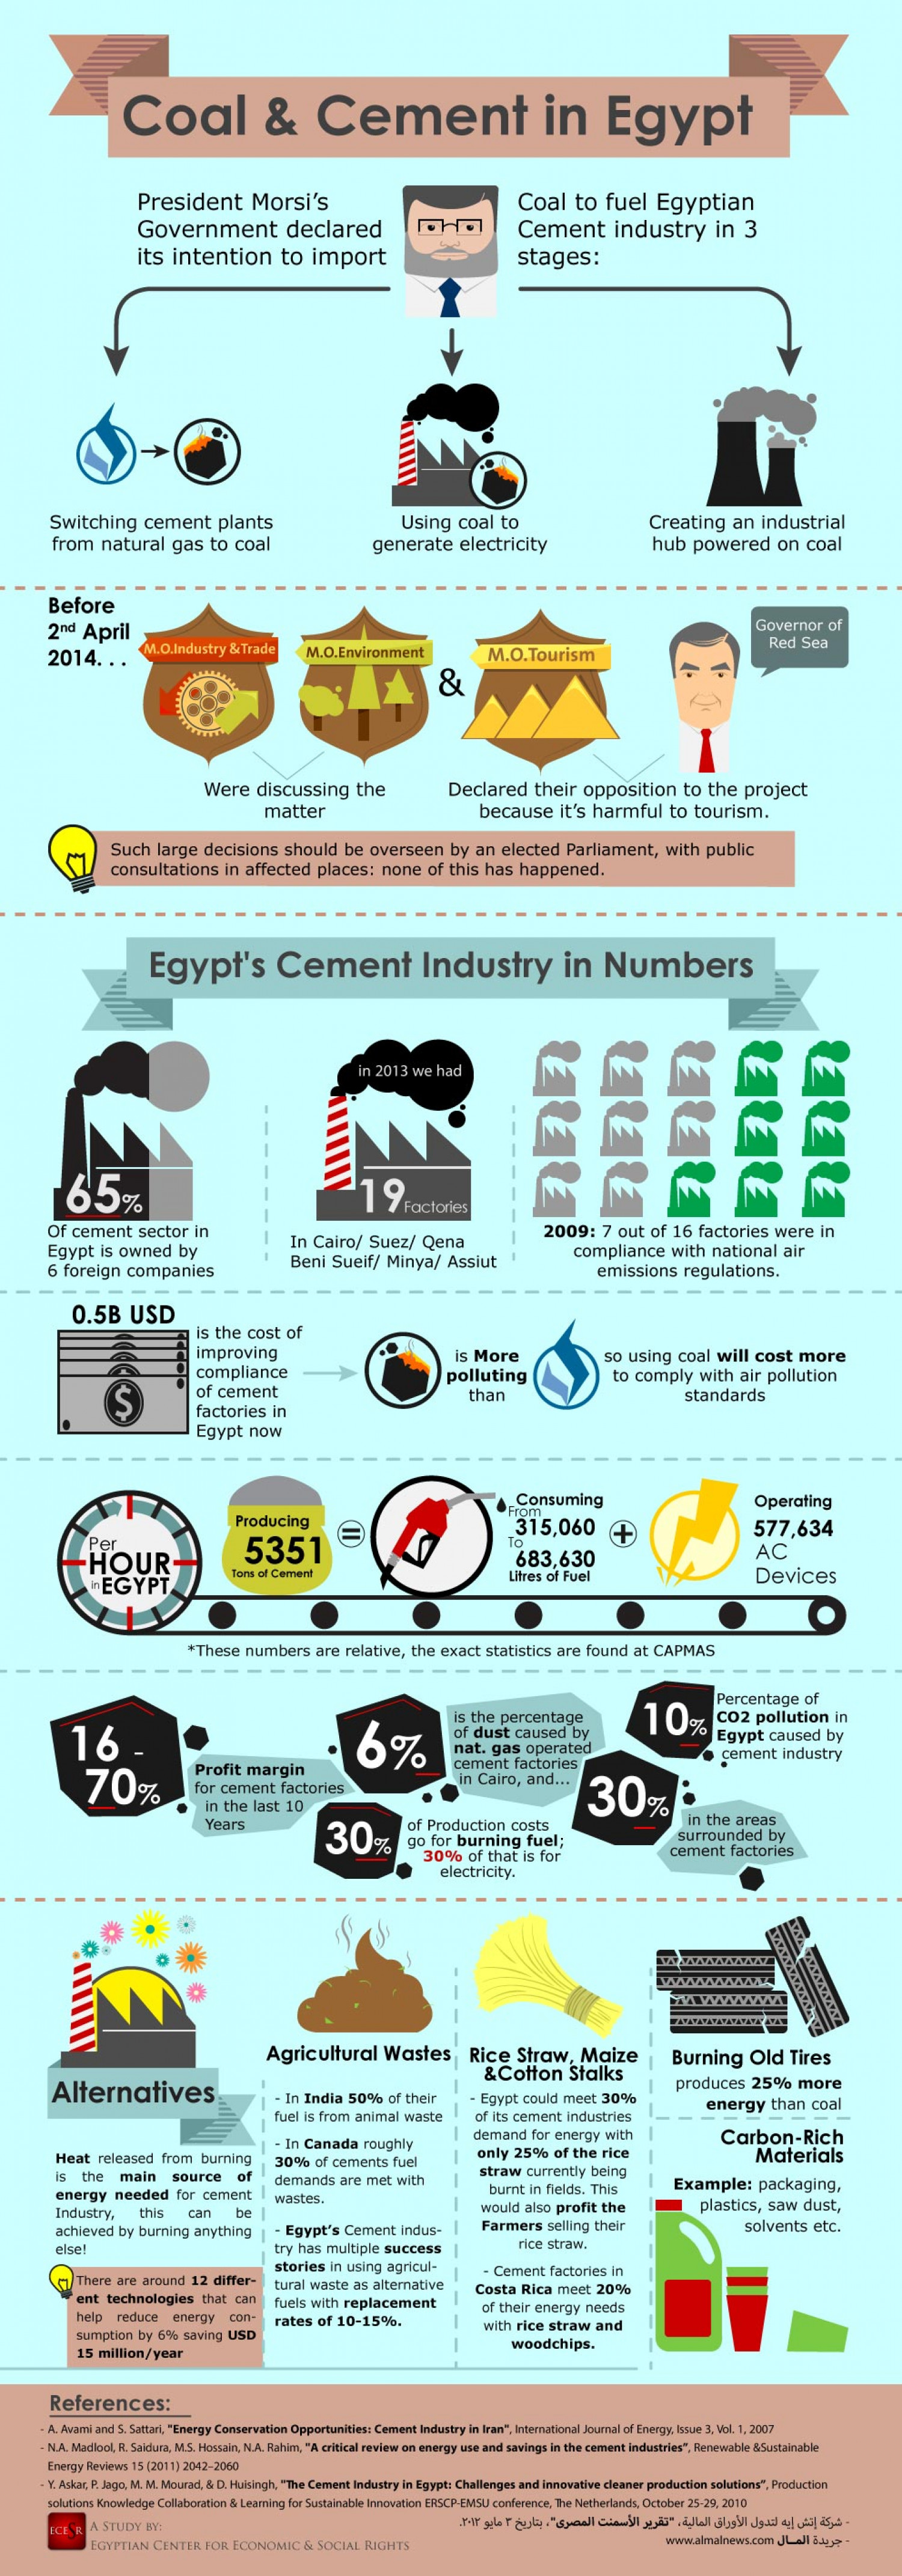 Coal and Cement in Egypt Infographic